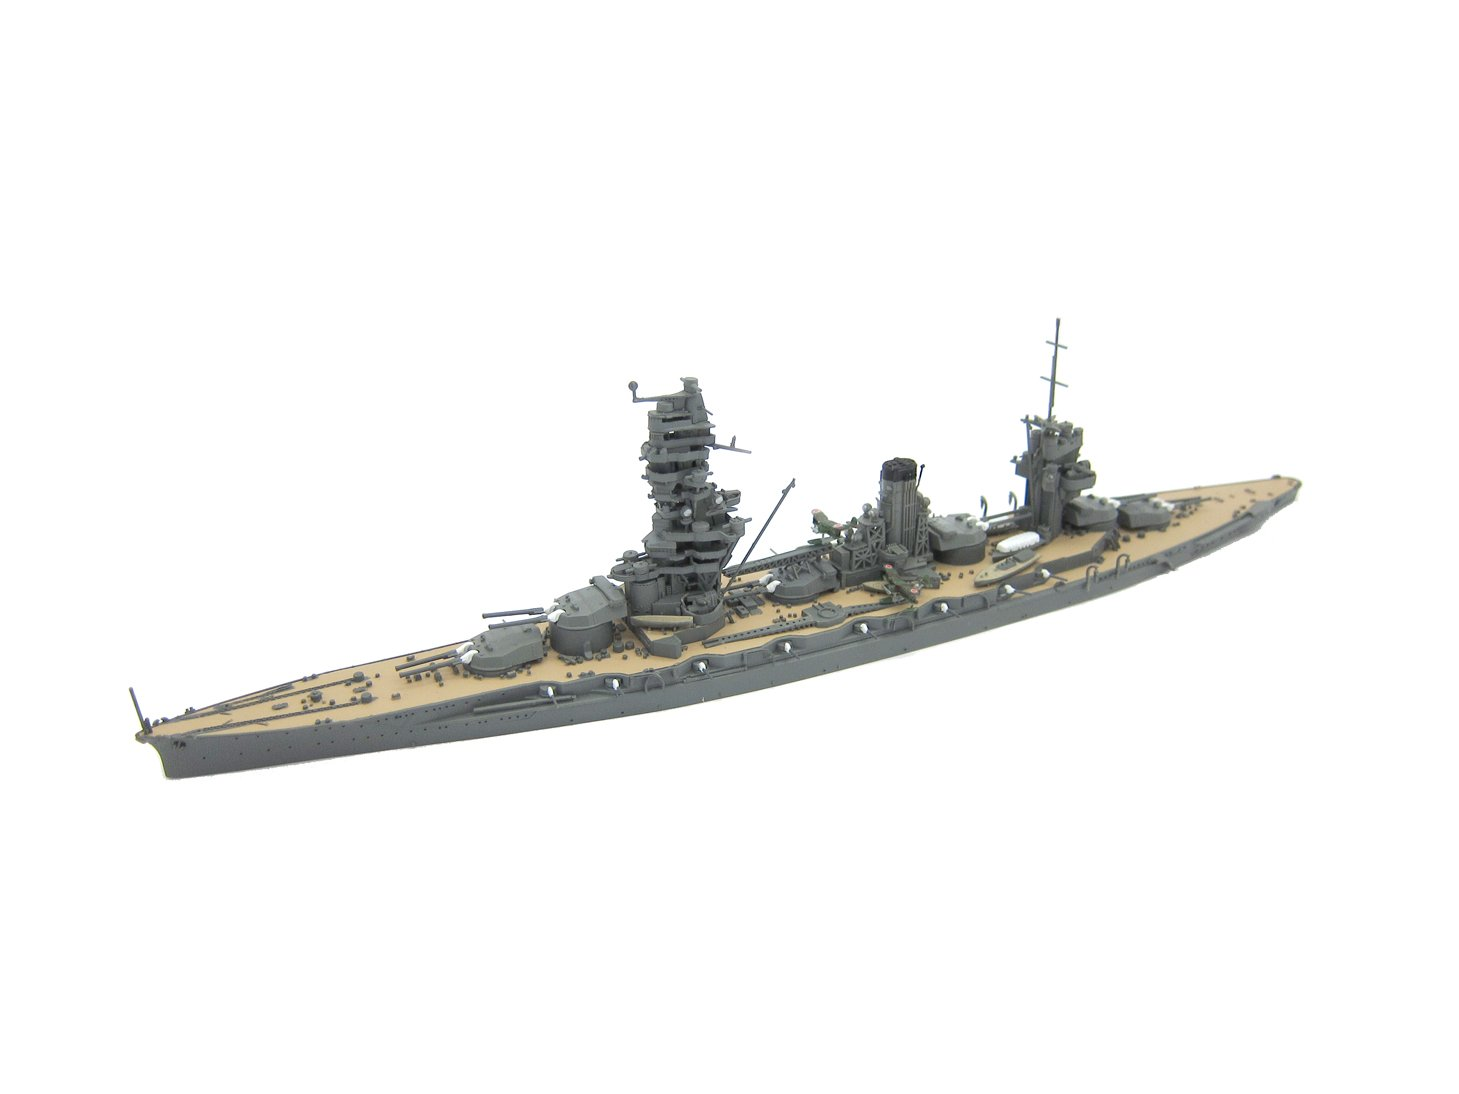 '10 1/700 specialized series No.79 Japanese Navy battleship Fuso Showa (japan import) Fujimi 特-79